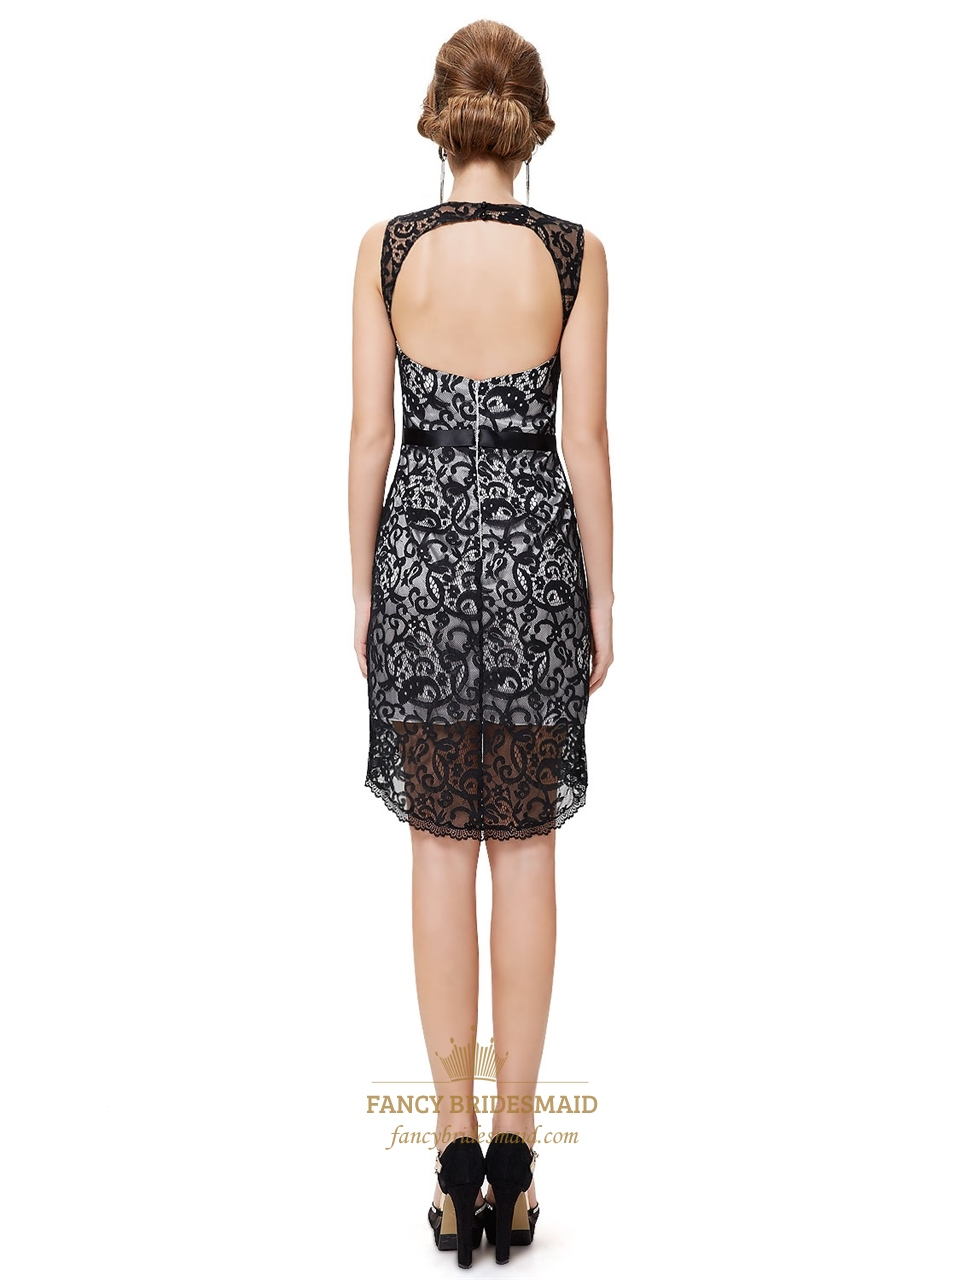 black and white lace dress with open backshort white and